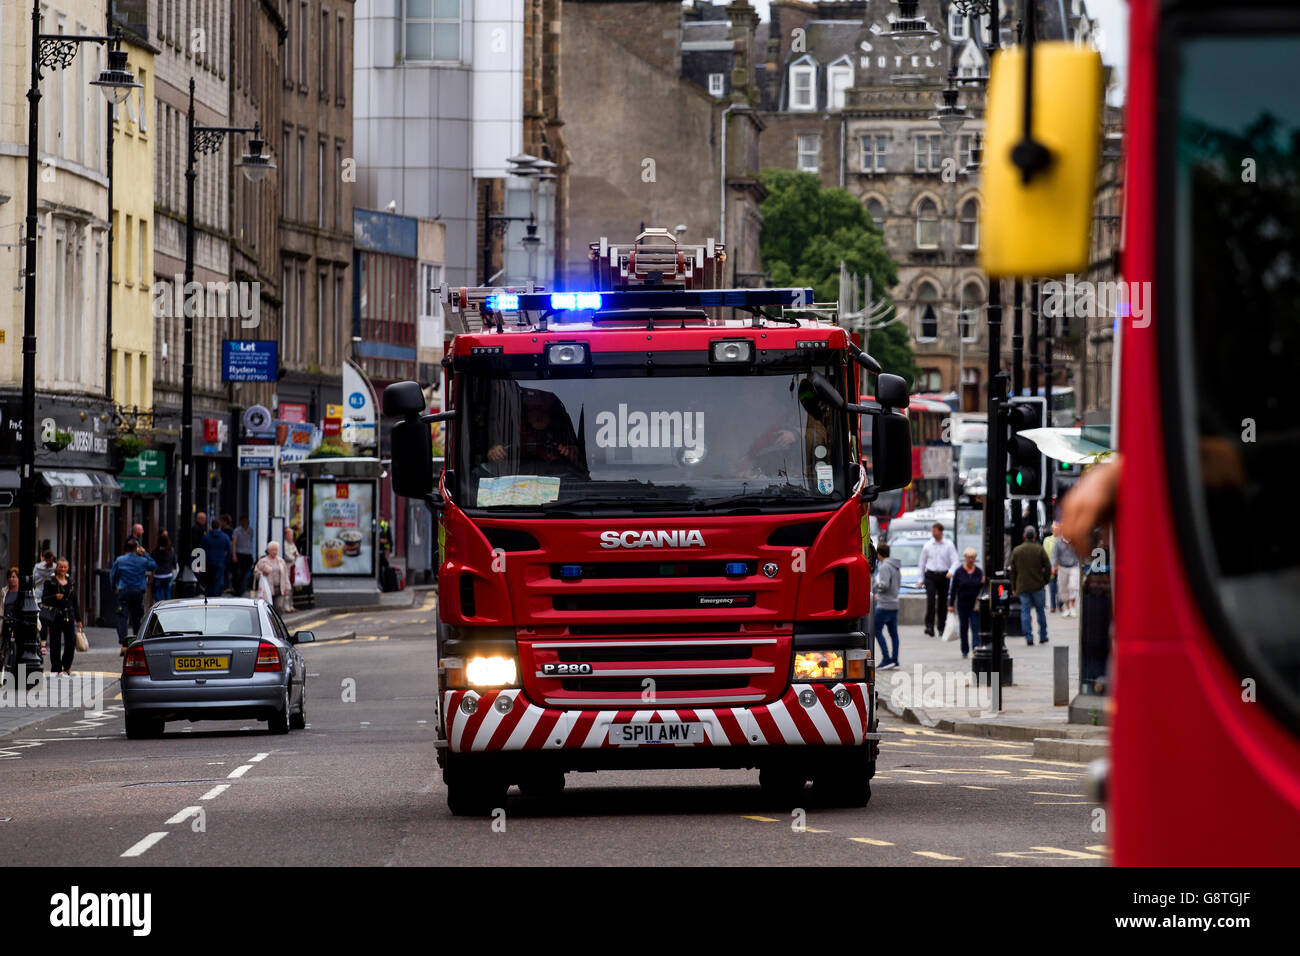 Scottish Fire And Rescue Service Fire Engine responding to a 999 Emergency call along the Overgate in central Dundee, Stock Photo